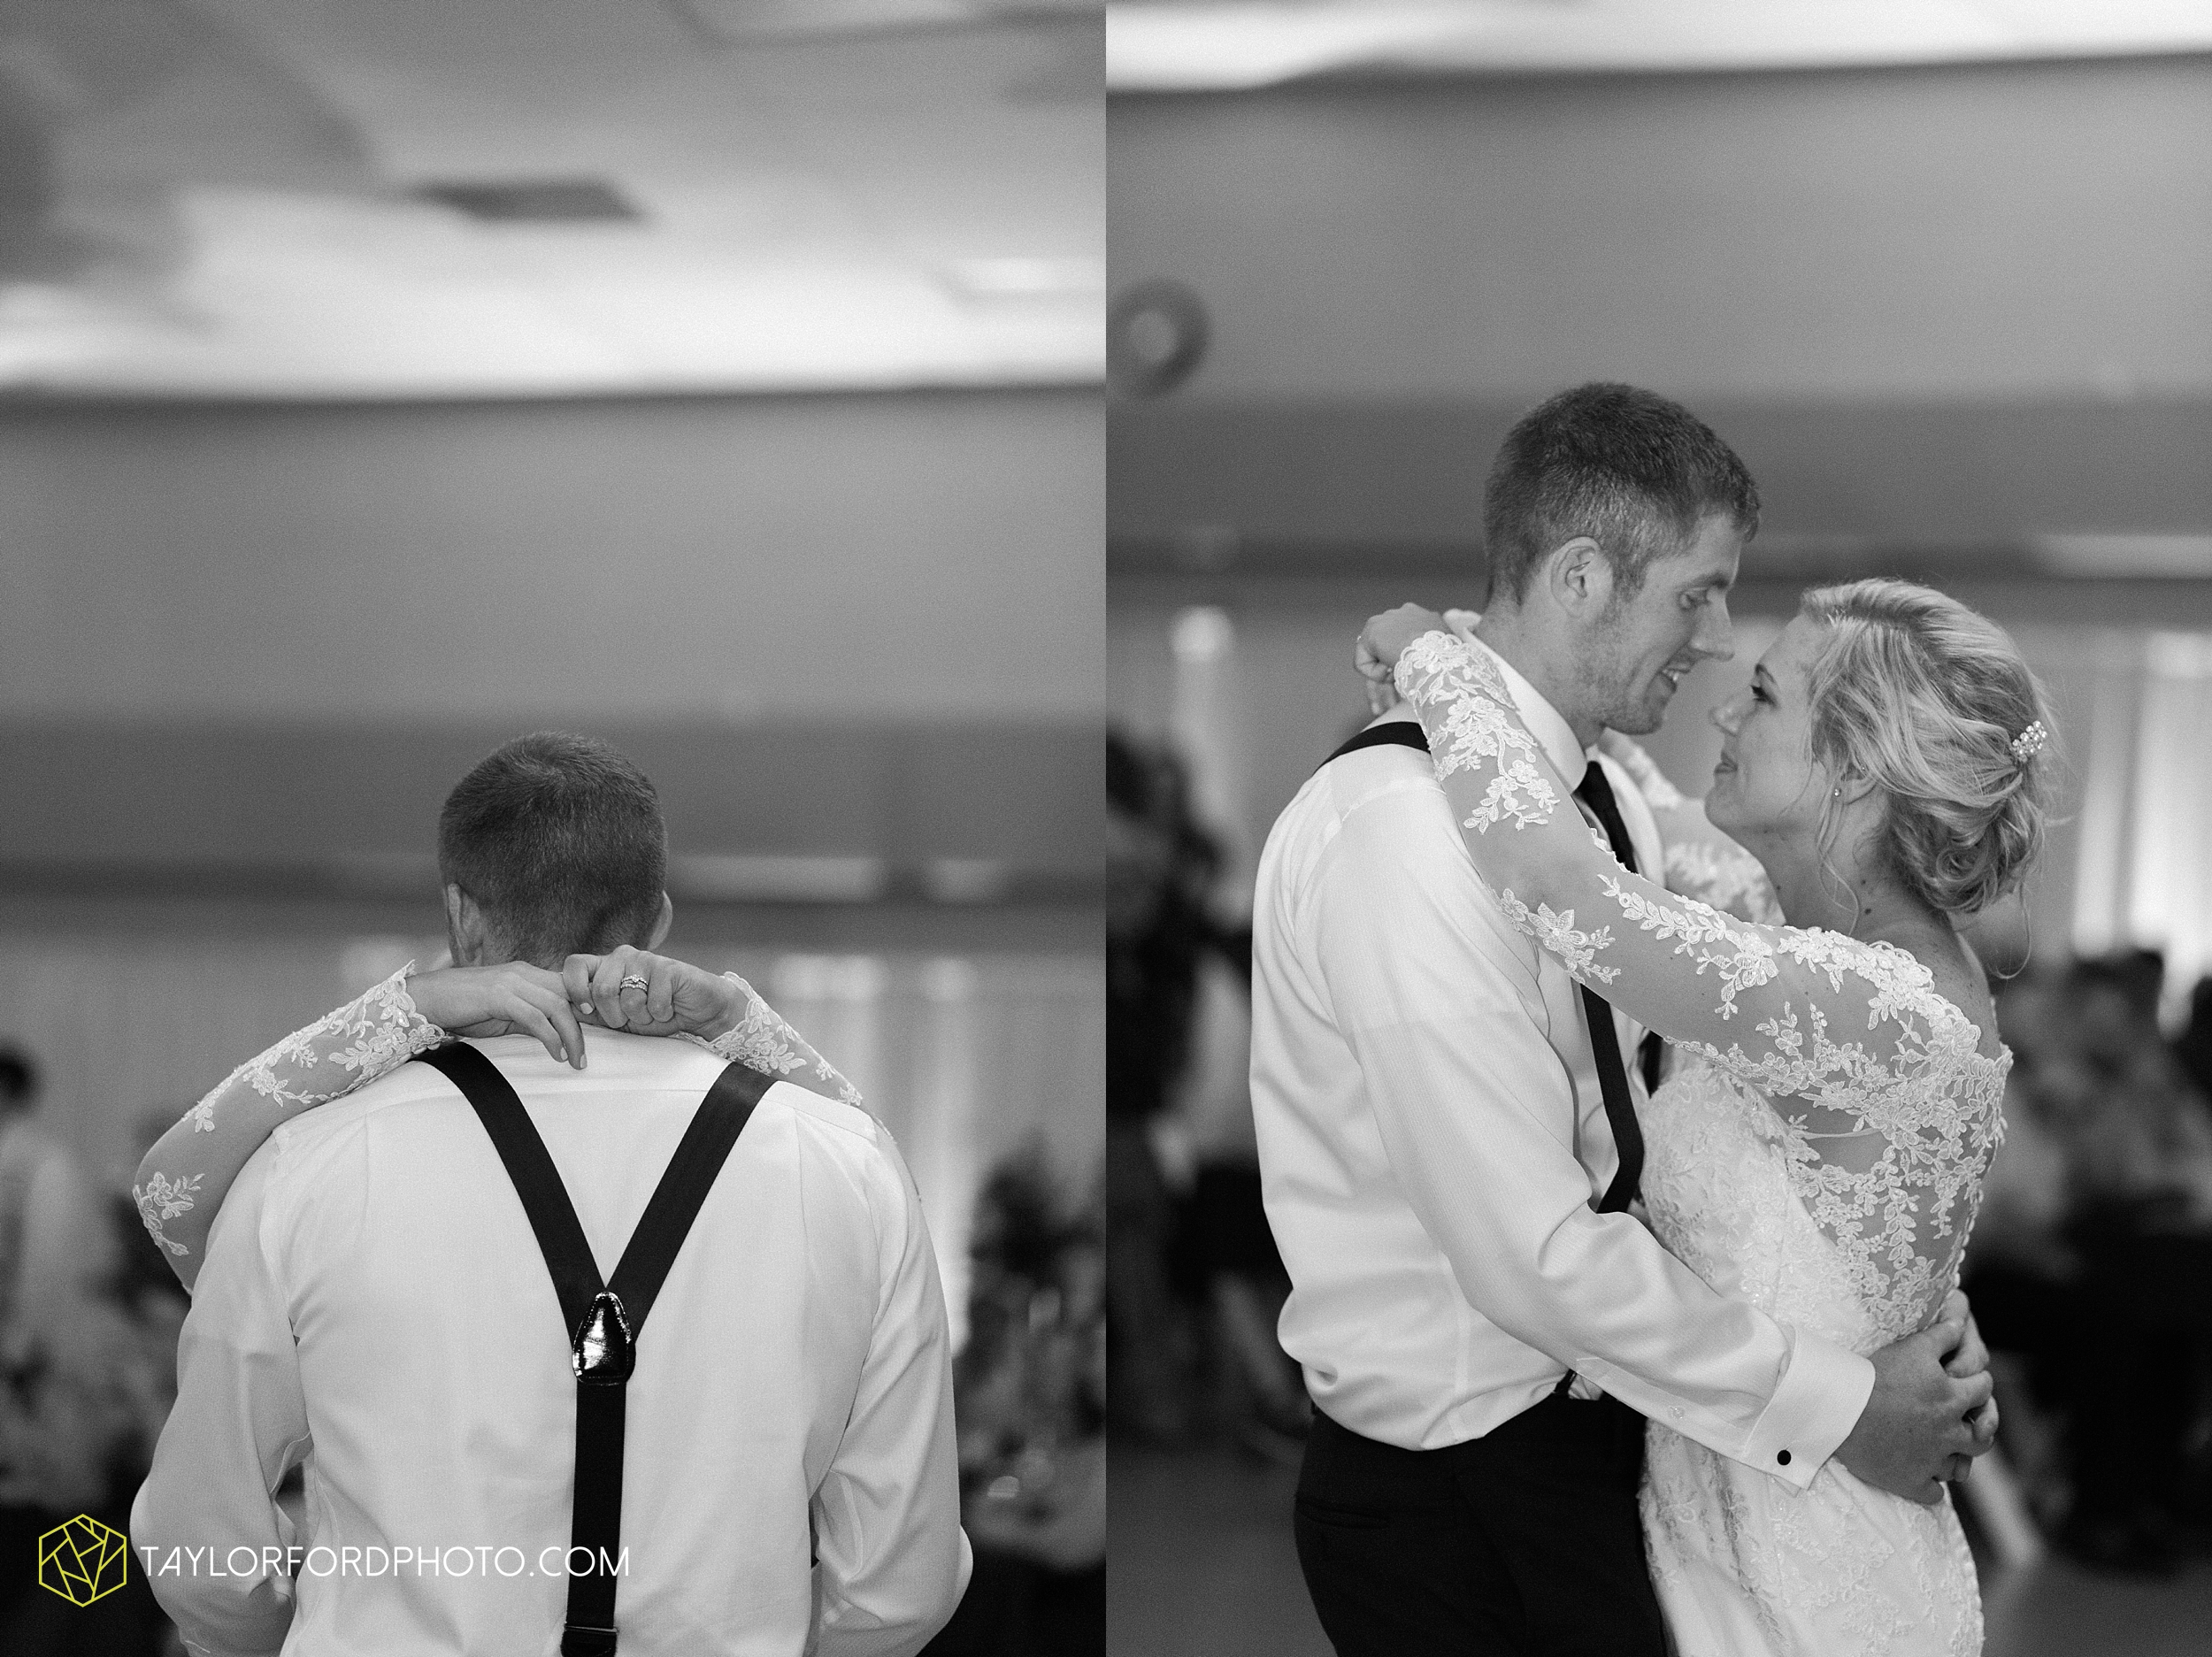 gayle-rayman-mike-steele-ottoville-ohio-wedding-immaculate-conception-parish-center-wedding-sycamore-lake-winery-wannamachers-photographer-taylor-ford-photography_0437.jpg